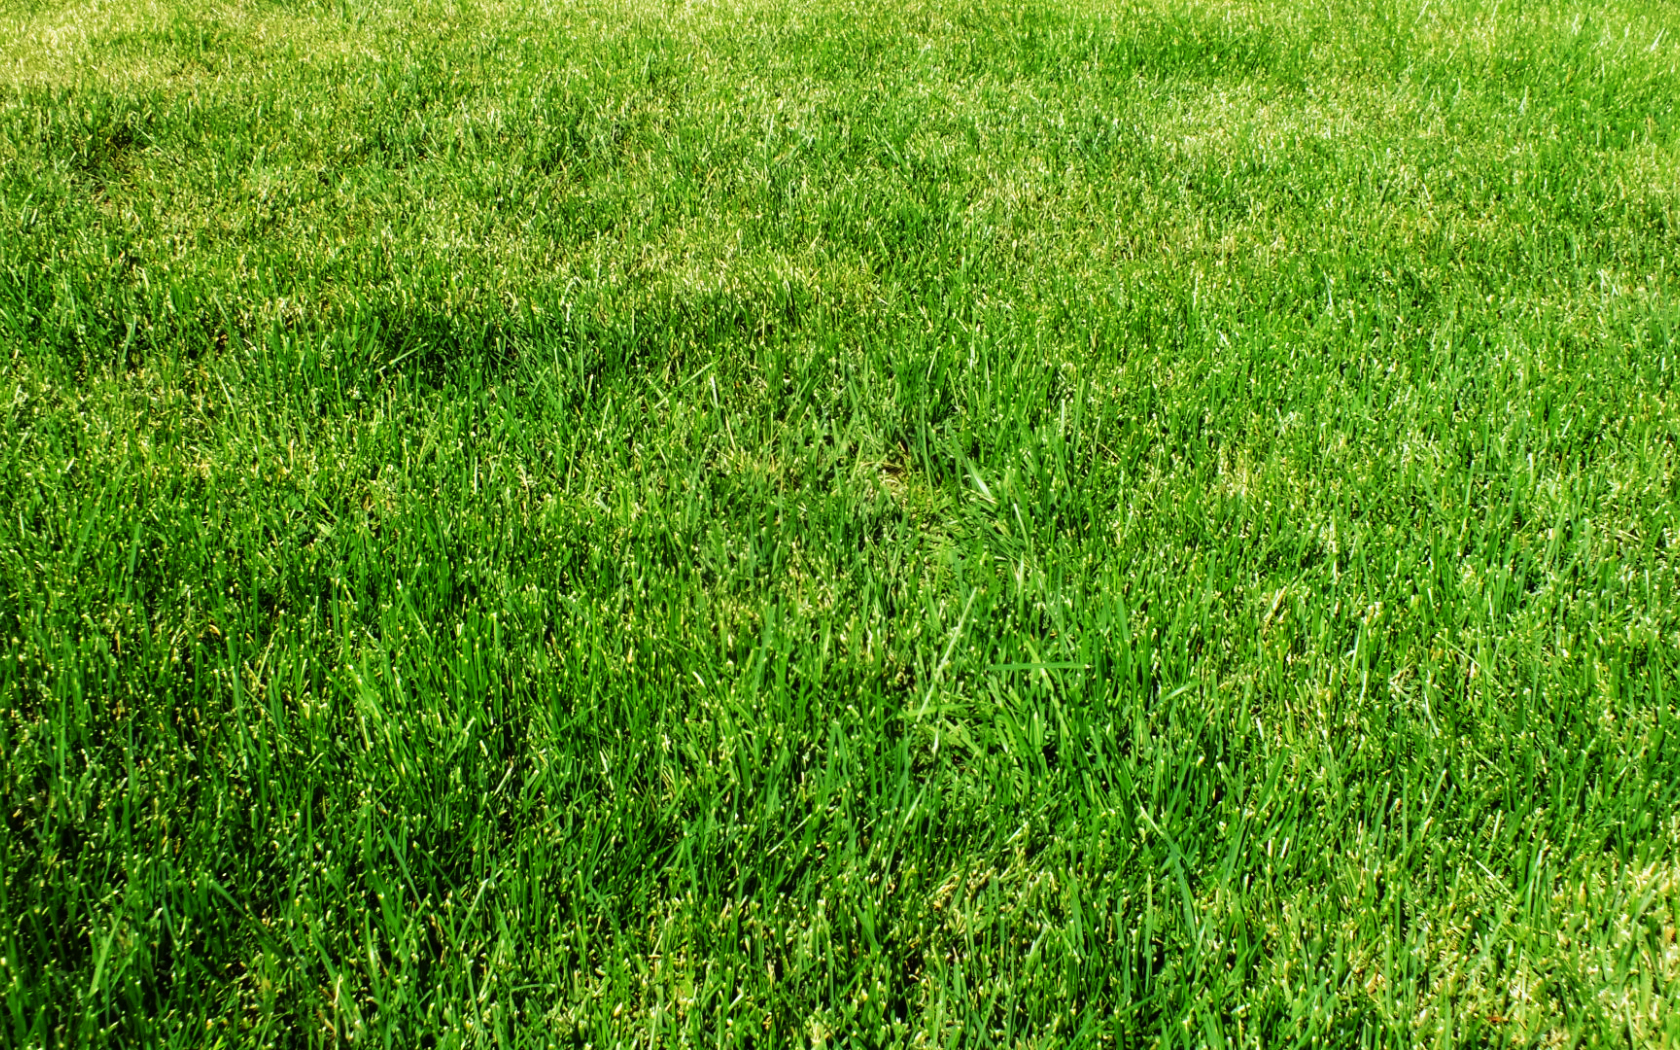 Free Download Grass Wallpaper 1080p By Sansnoir 1920x1080 For